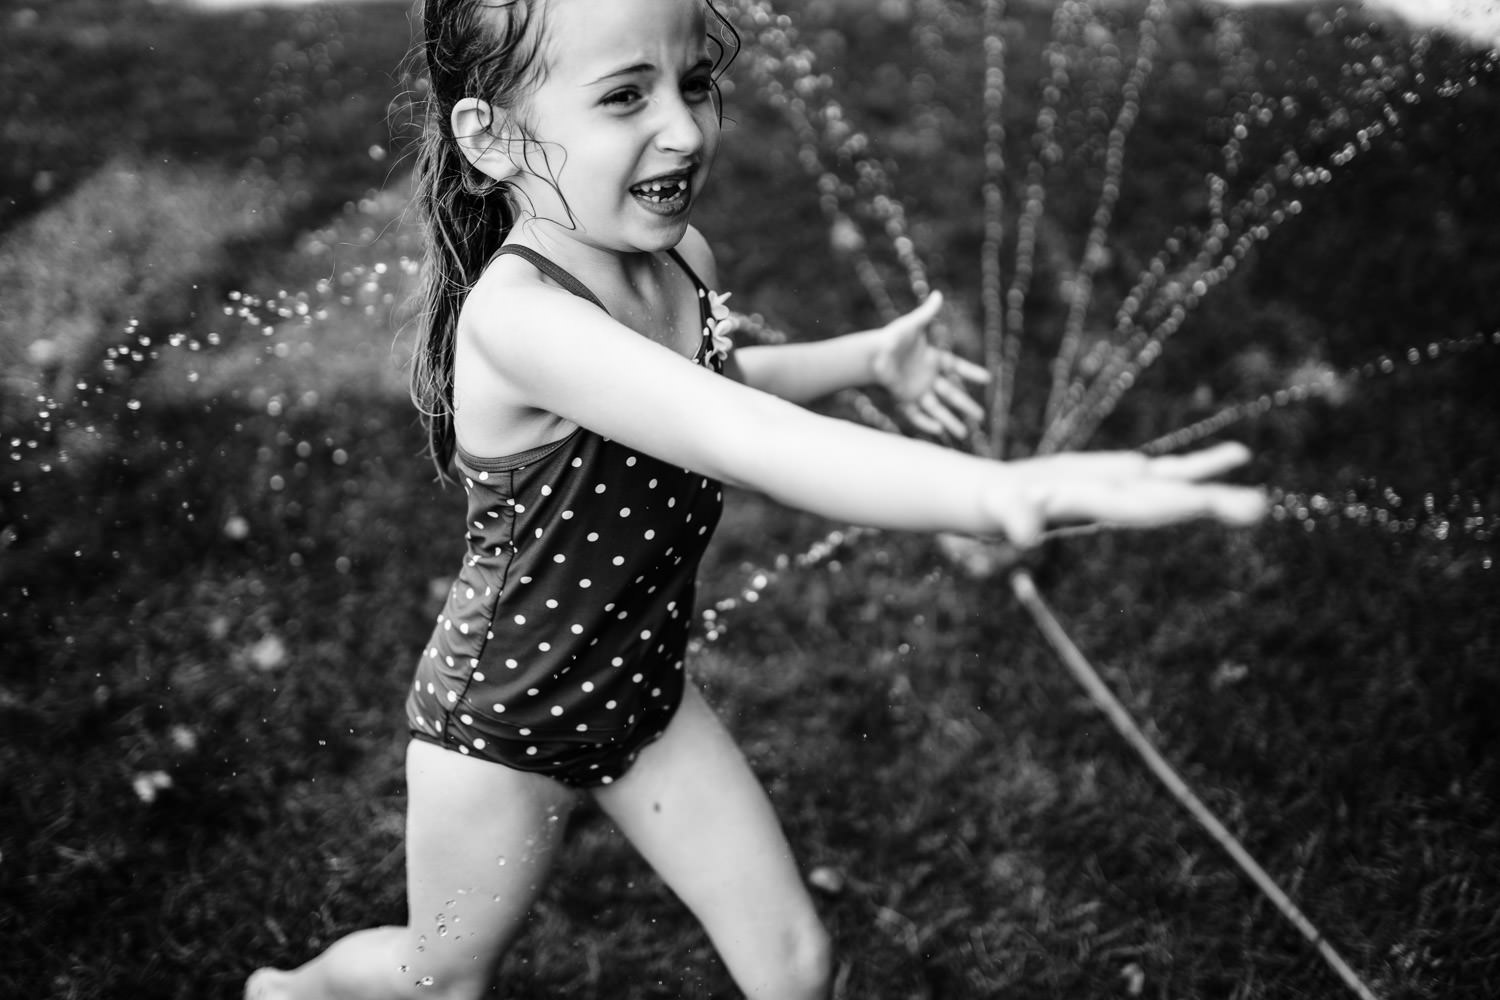 A little girl plays in the sprinkler.